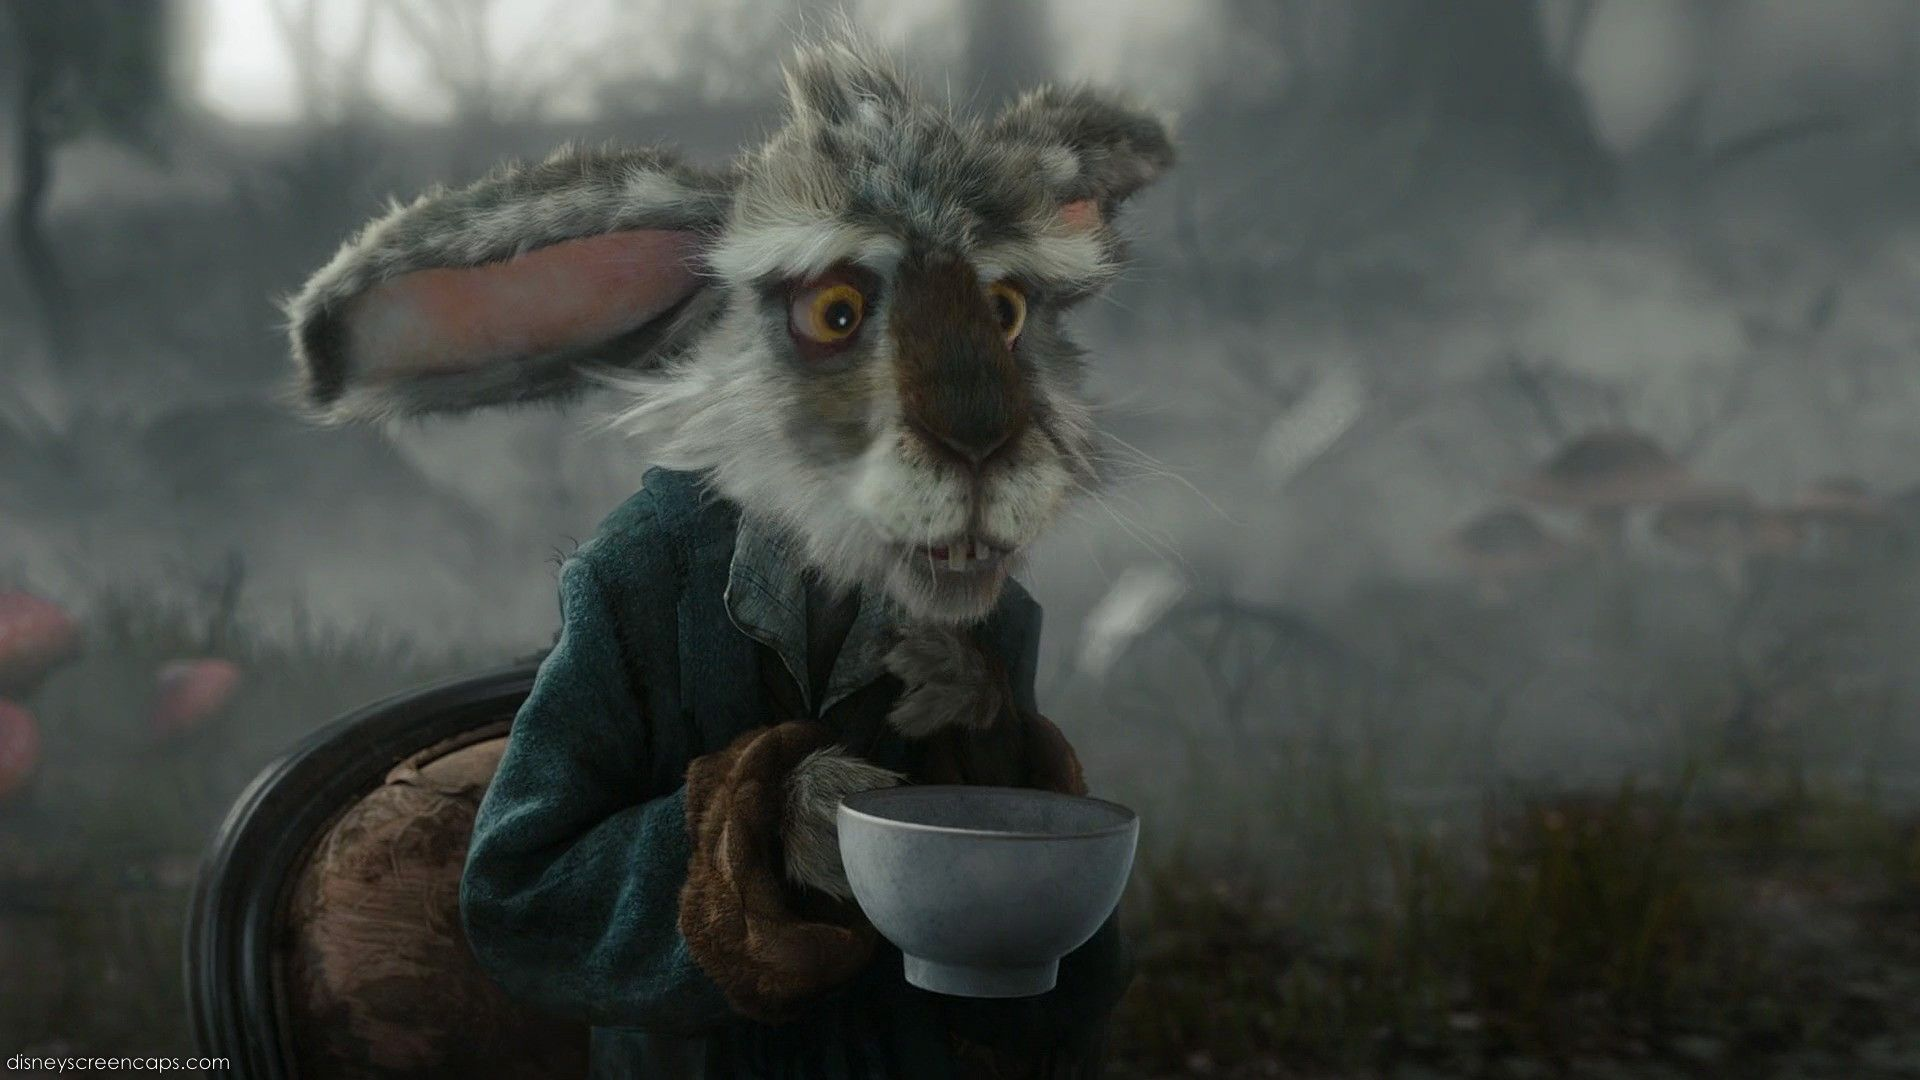 Mad March Hare March Hare 33179588 1920 1080 Jpg 1920 1080